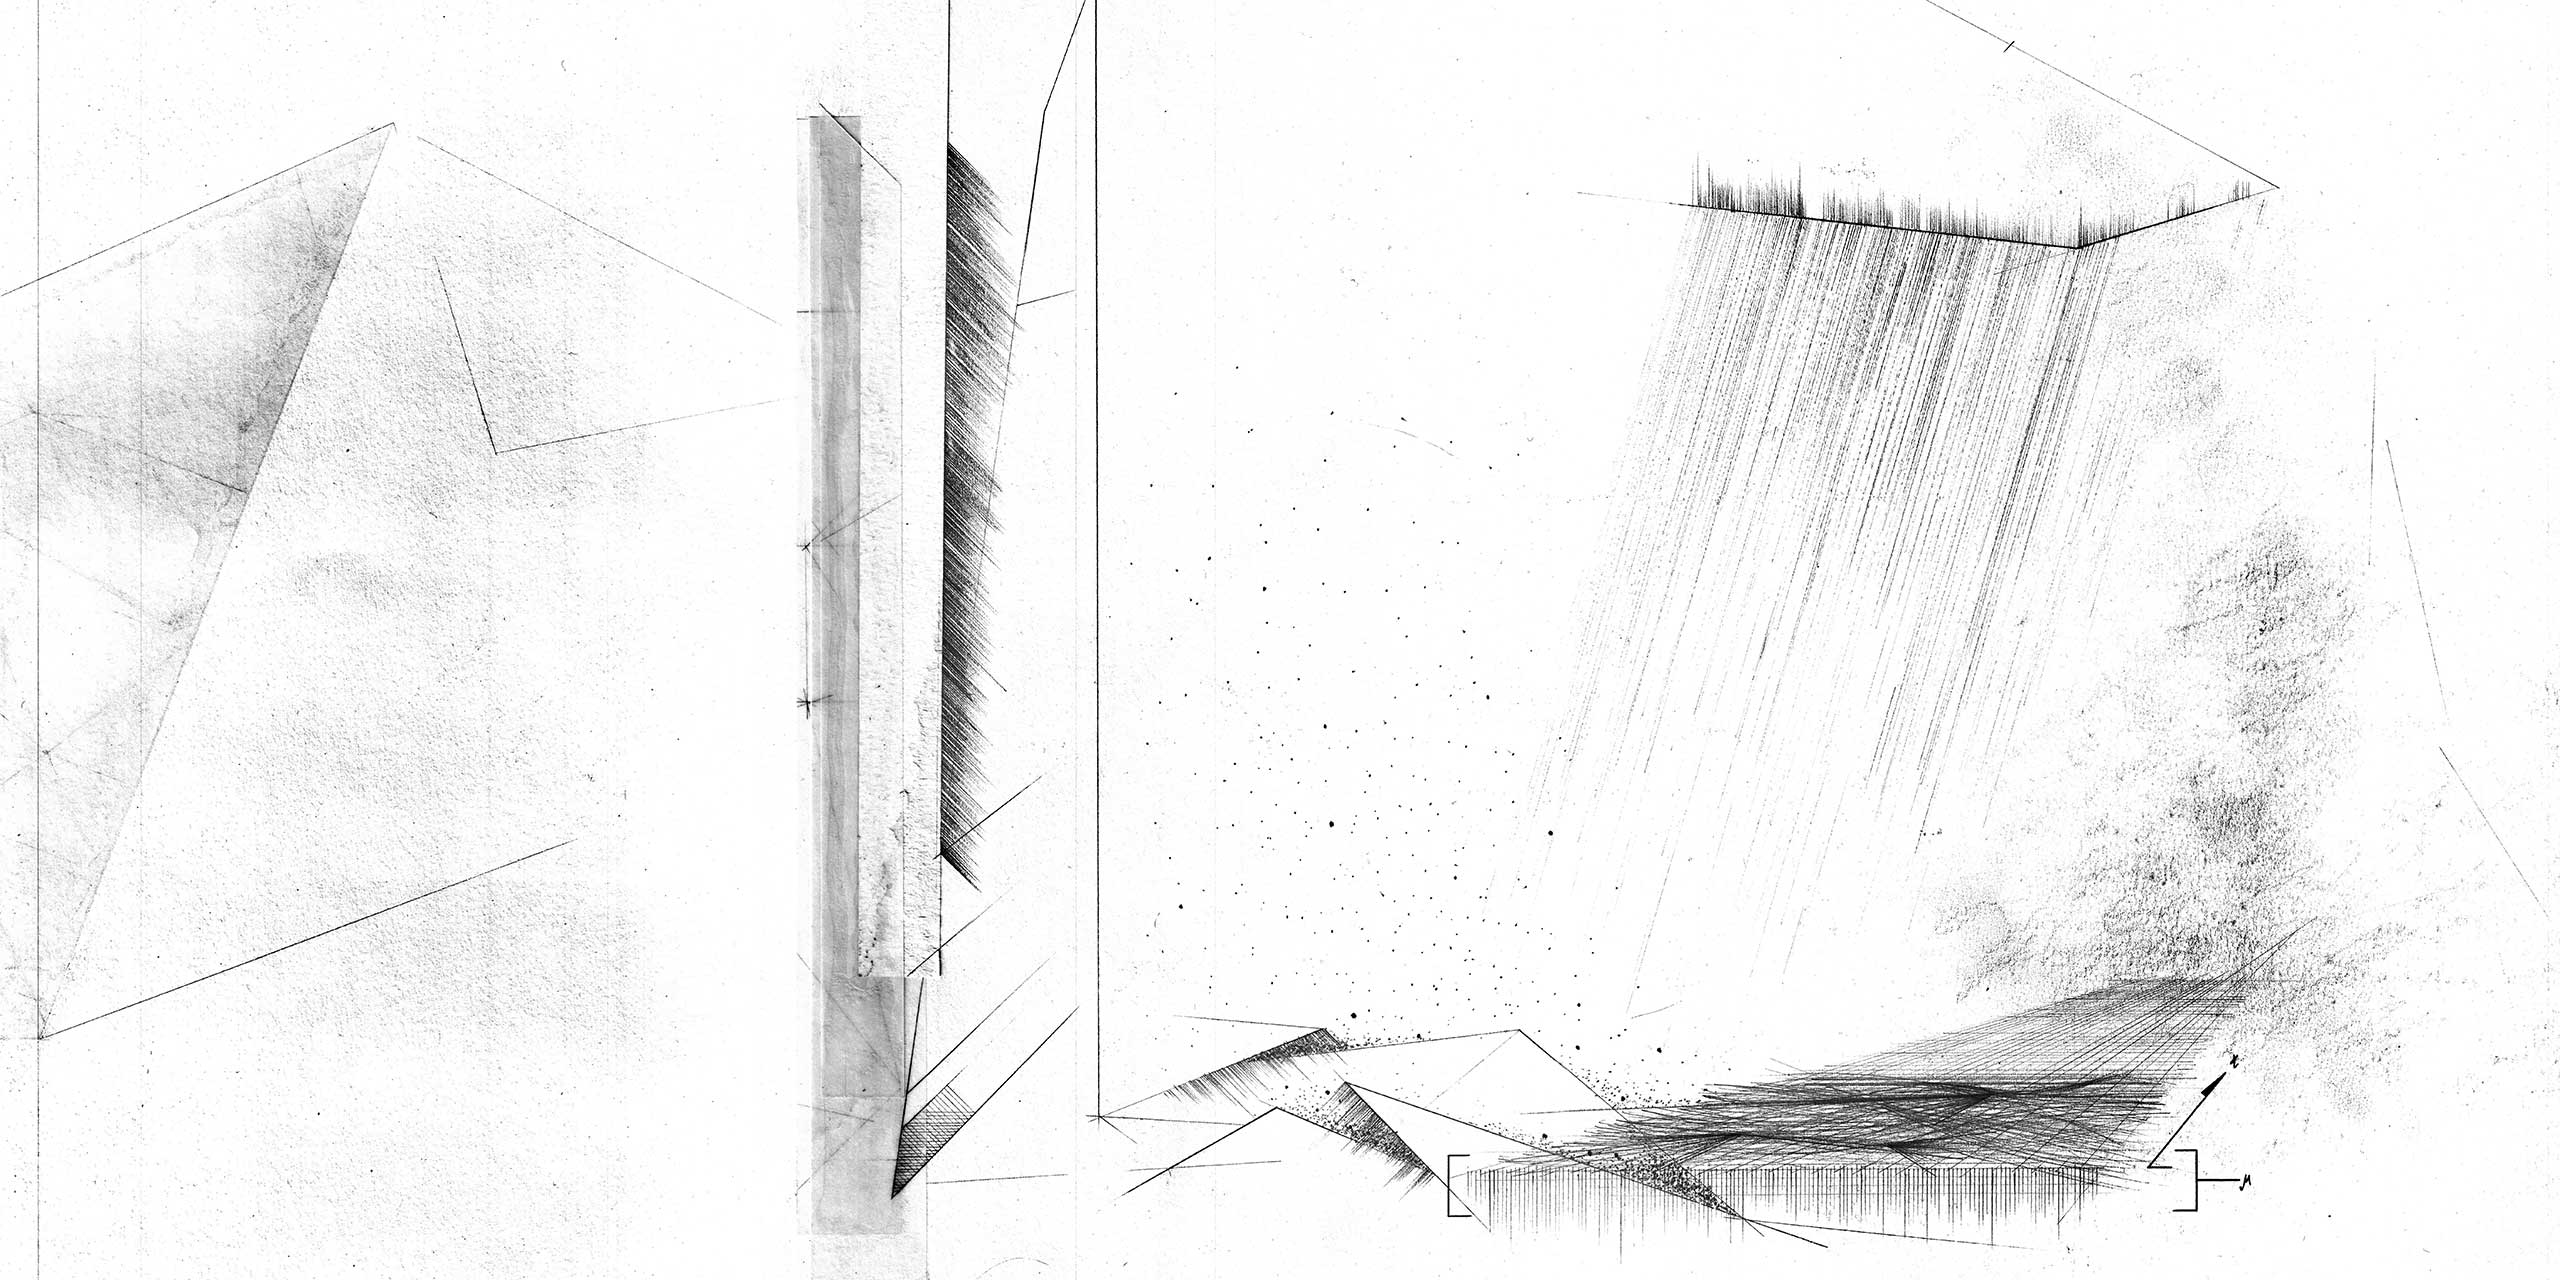 narrative hybrids museum inserted abstract section hand drawn architecture nottingham samuel critchlow sam